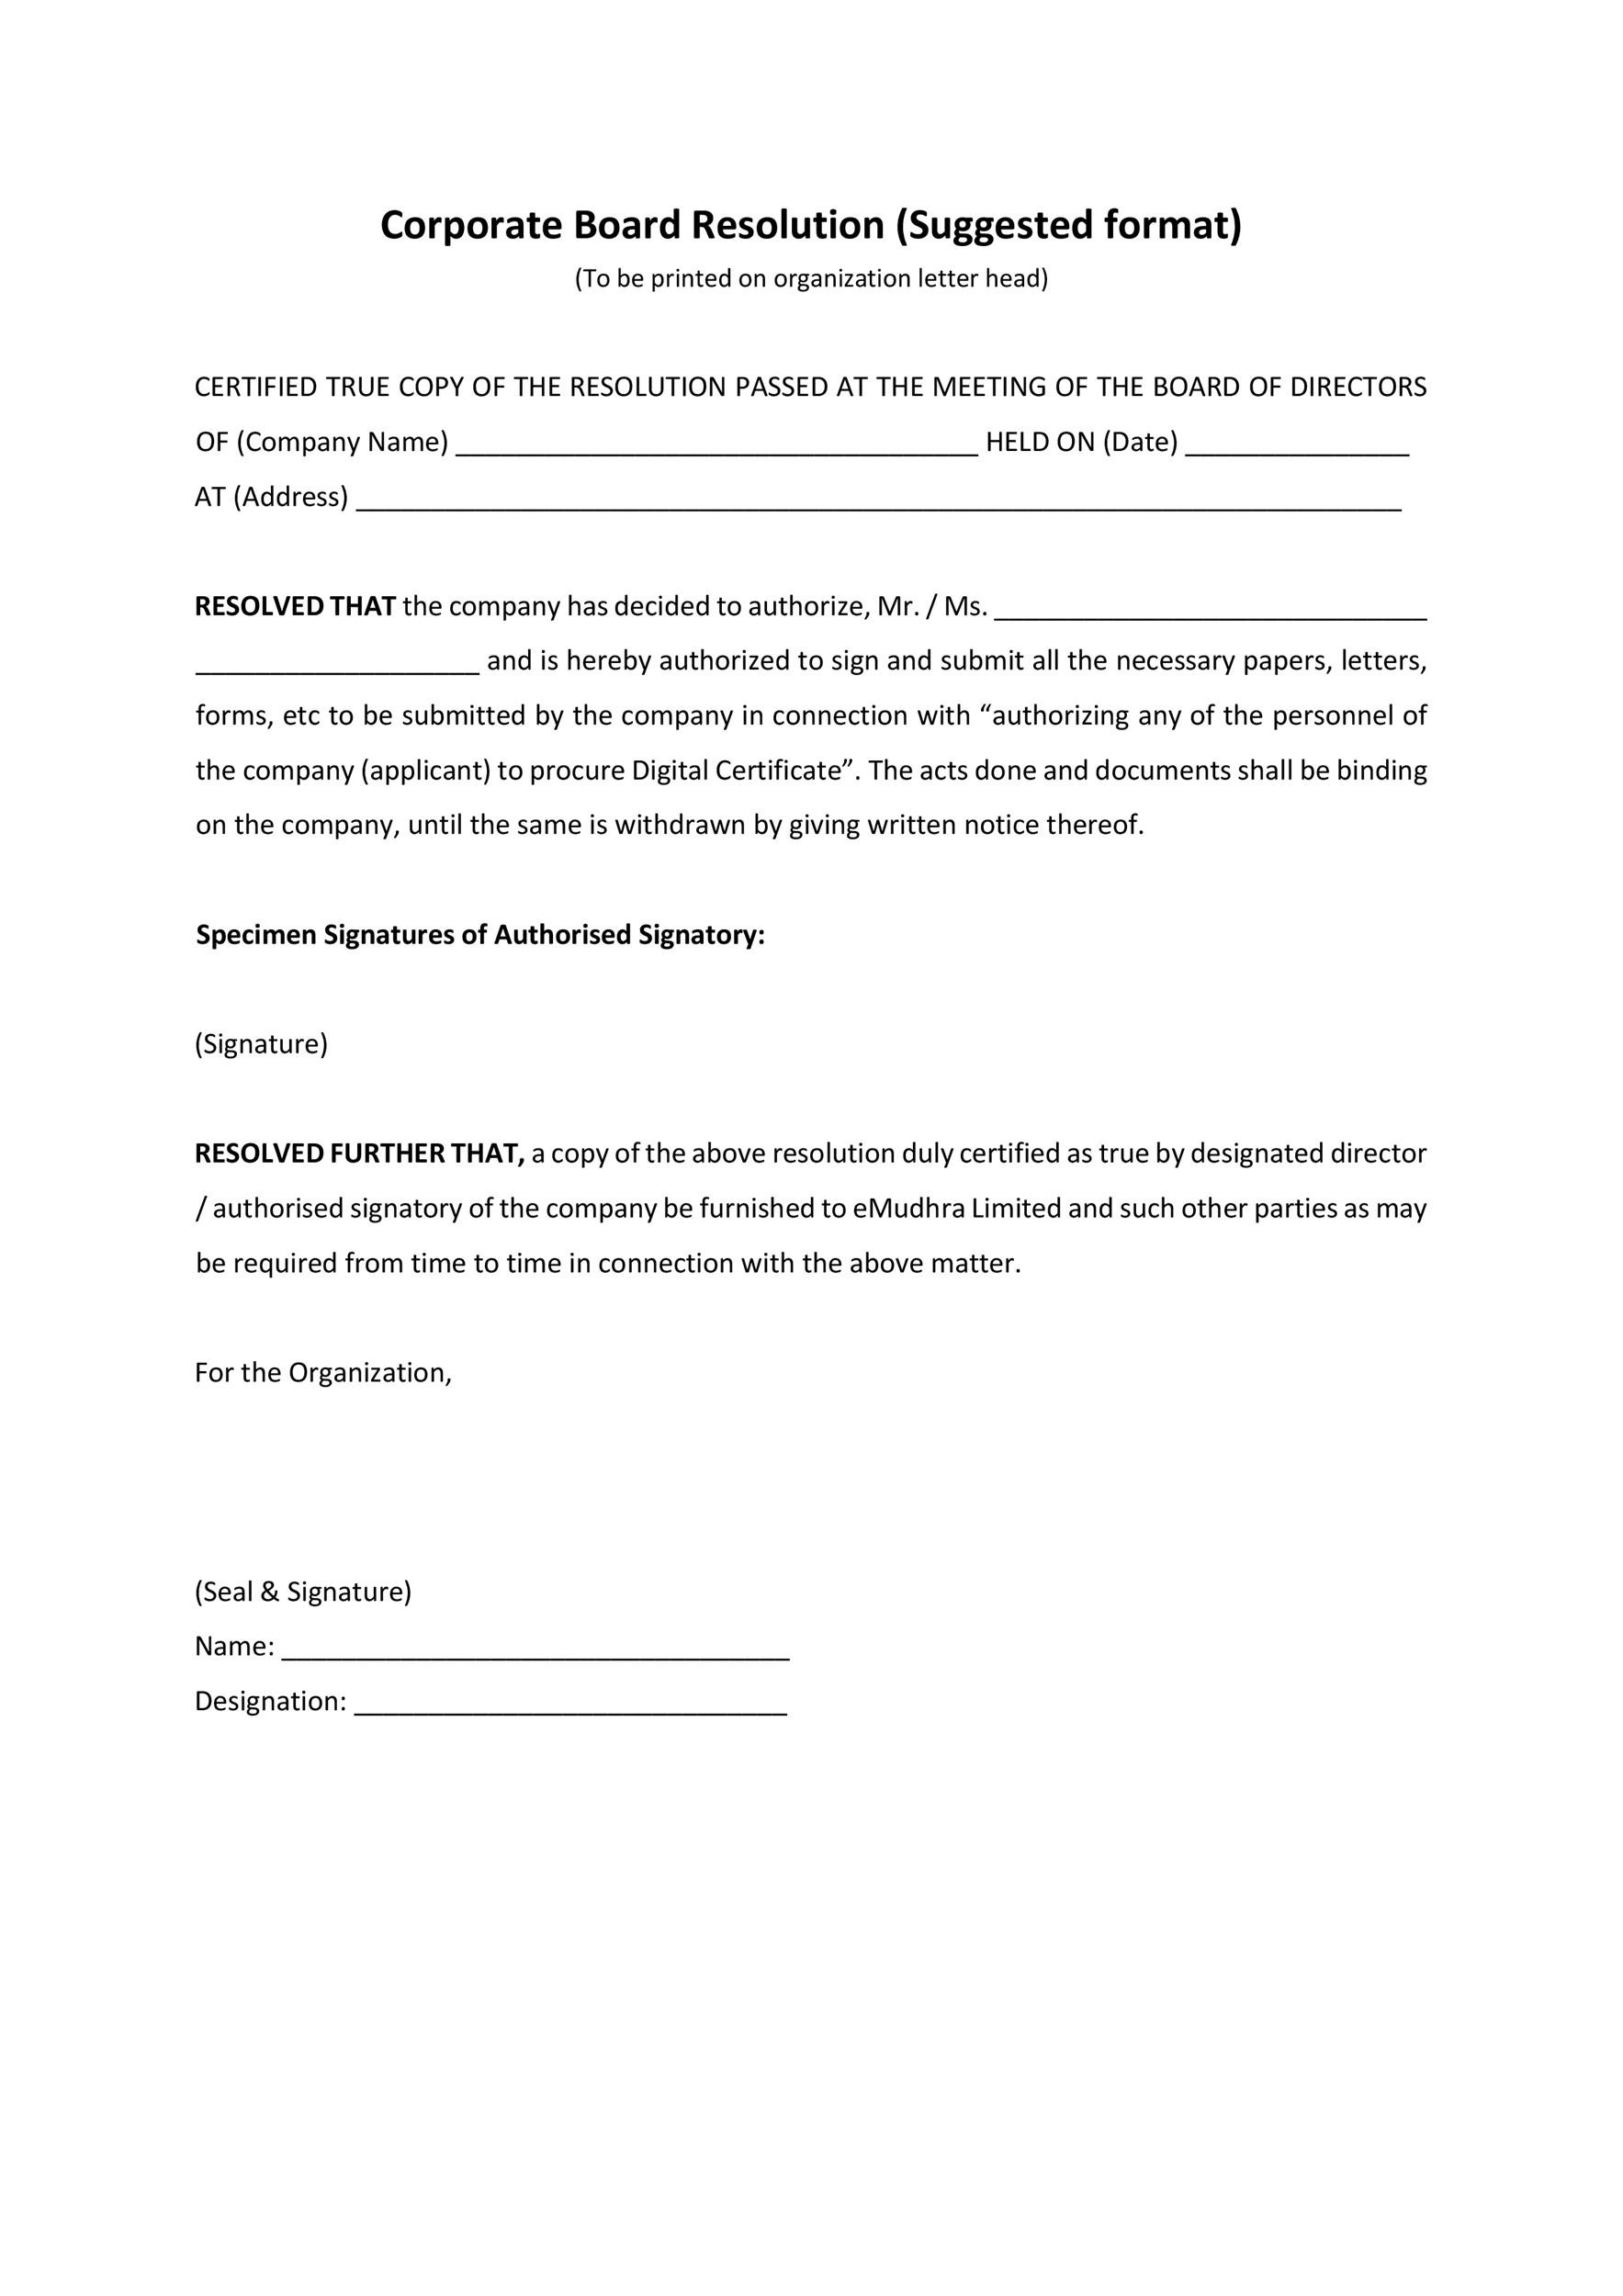 37 printable corporate resolution forms template lab for Corporate resolution authorized signers template